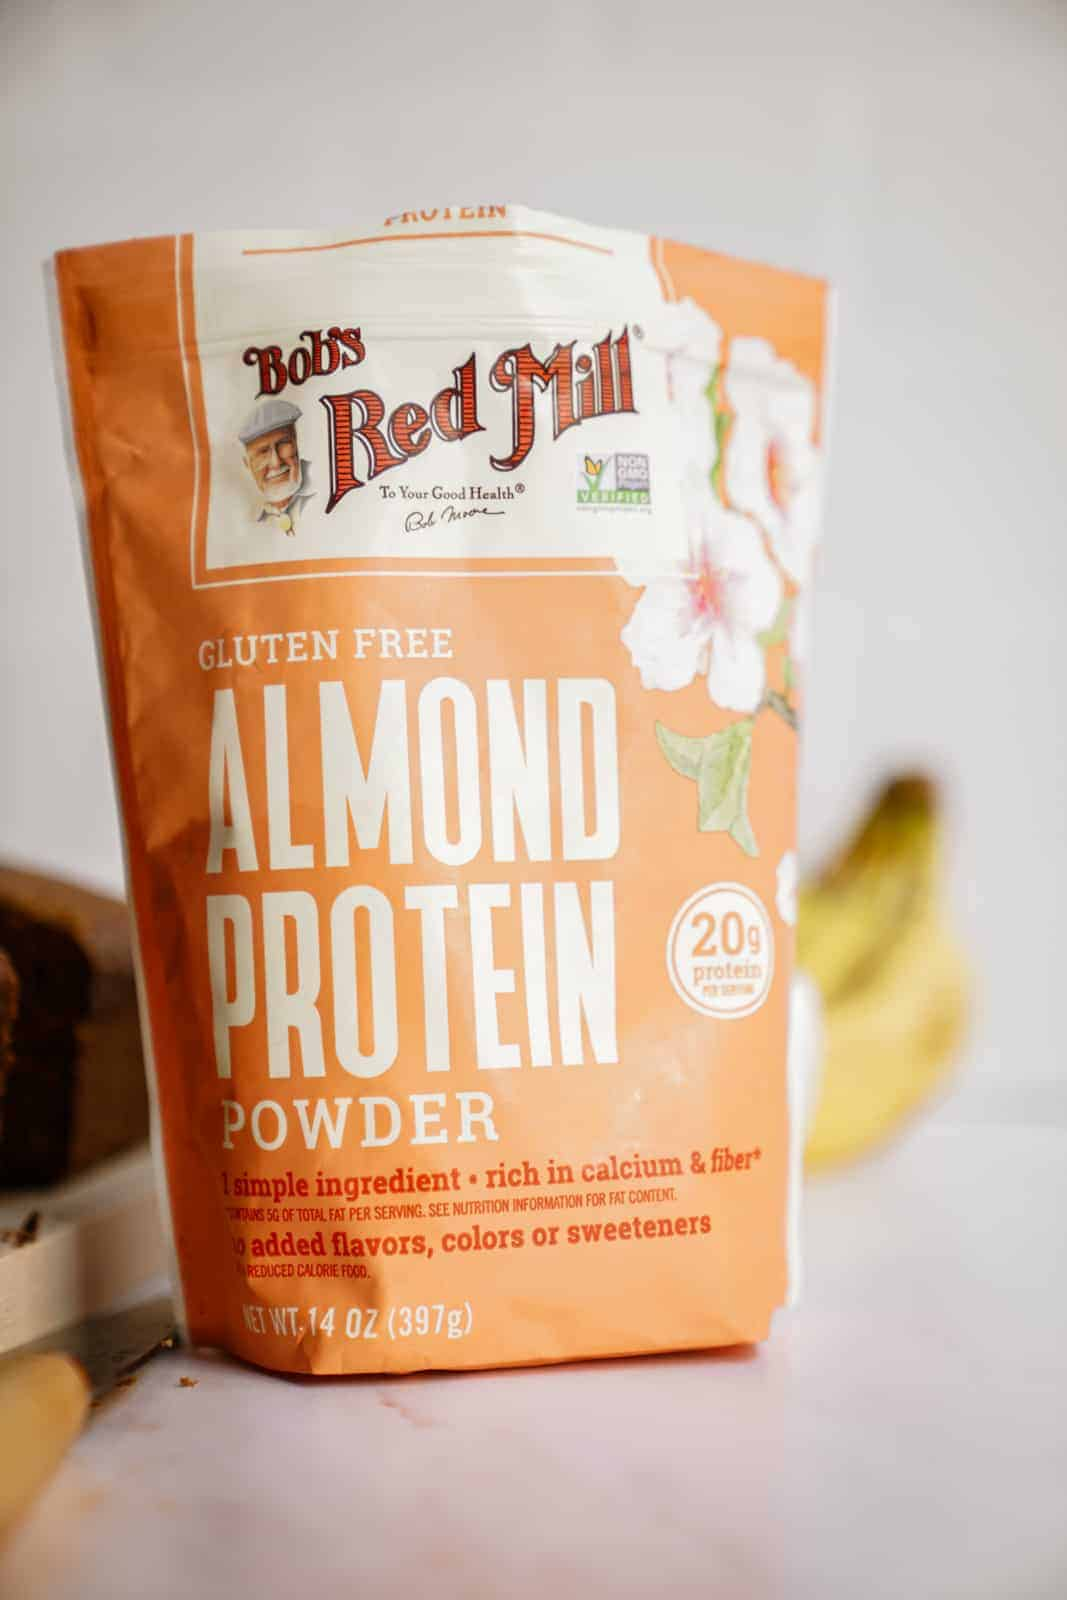 Bob's Red Mill Almond Protein Powder on counter